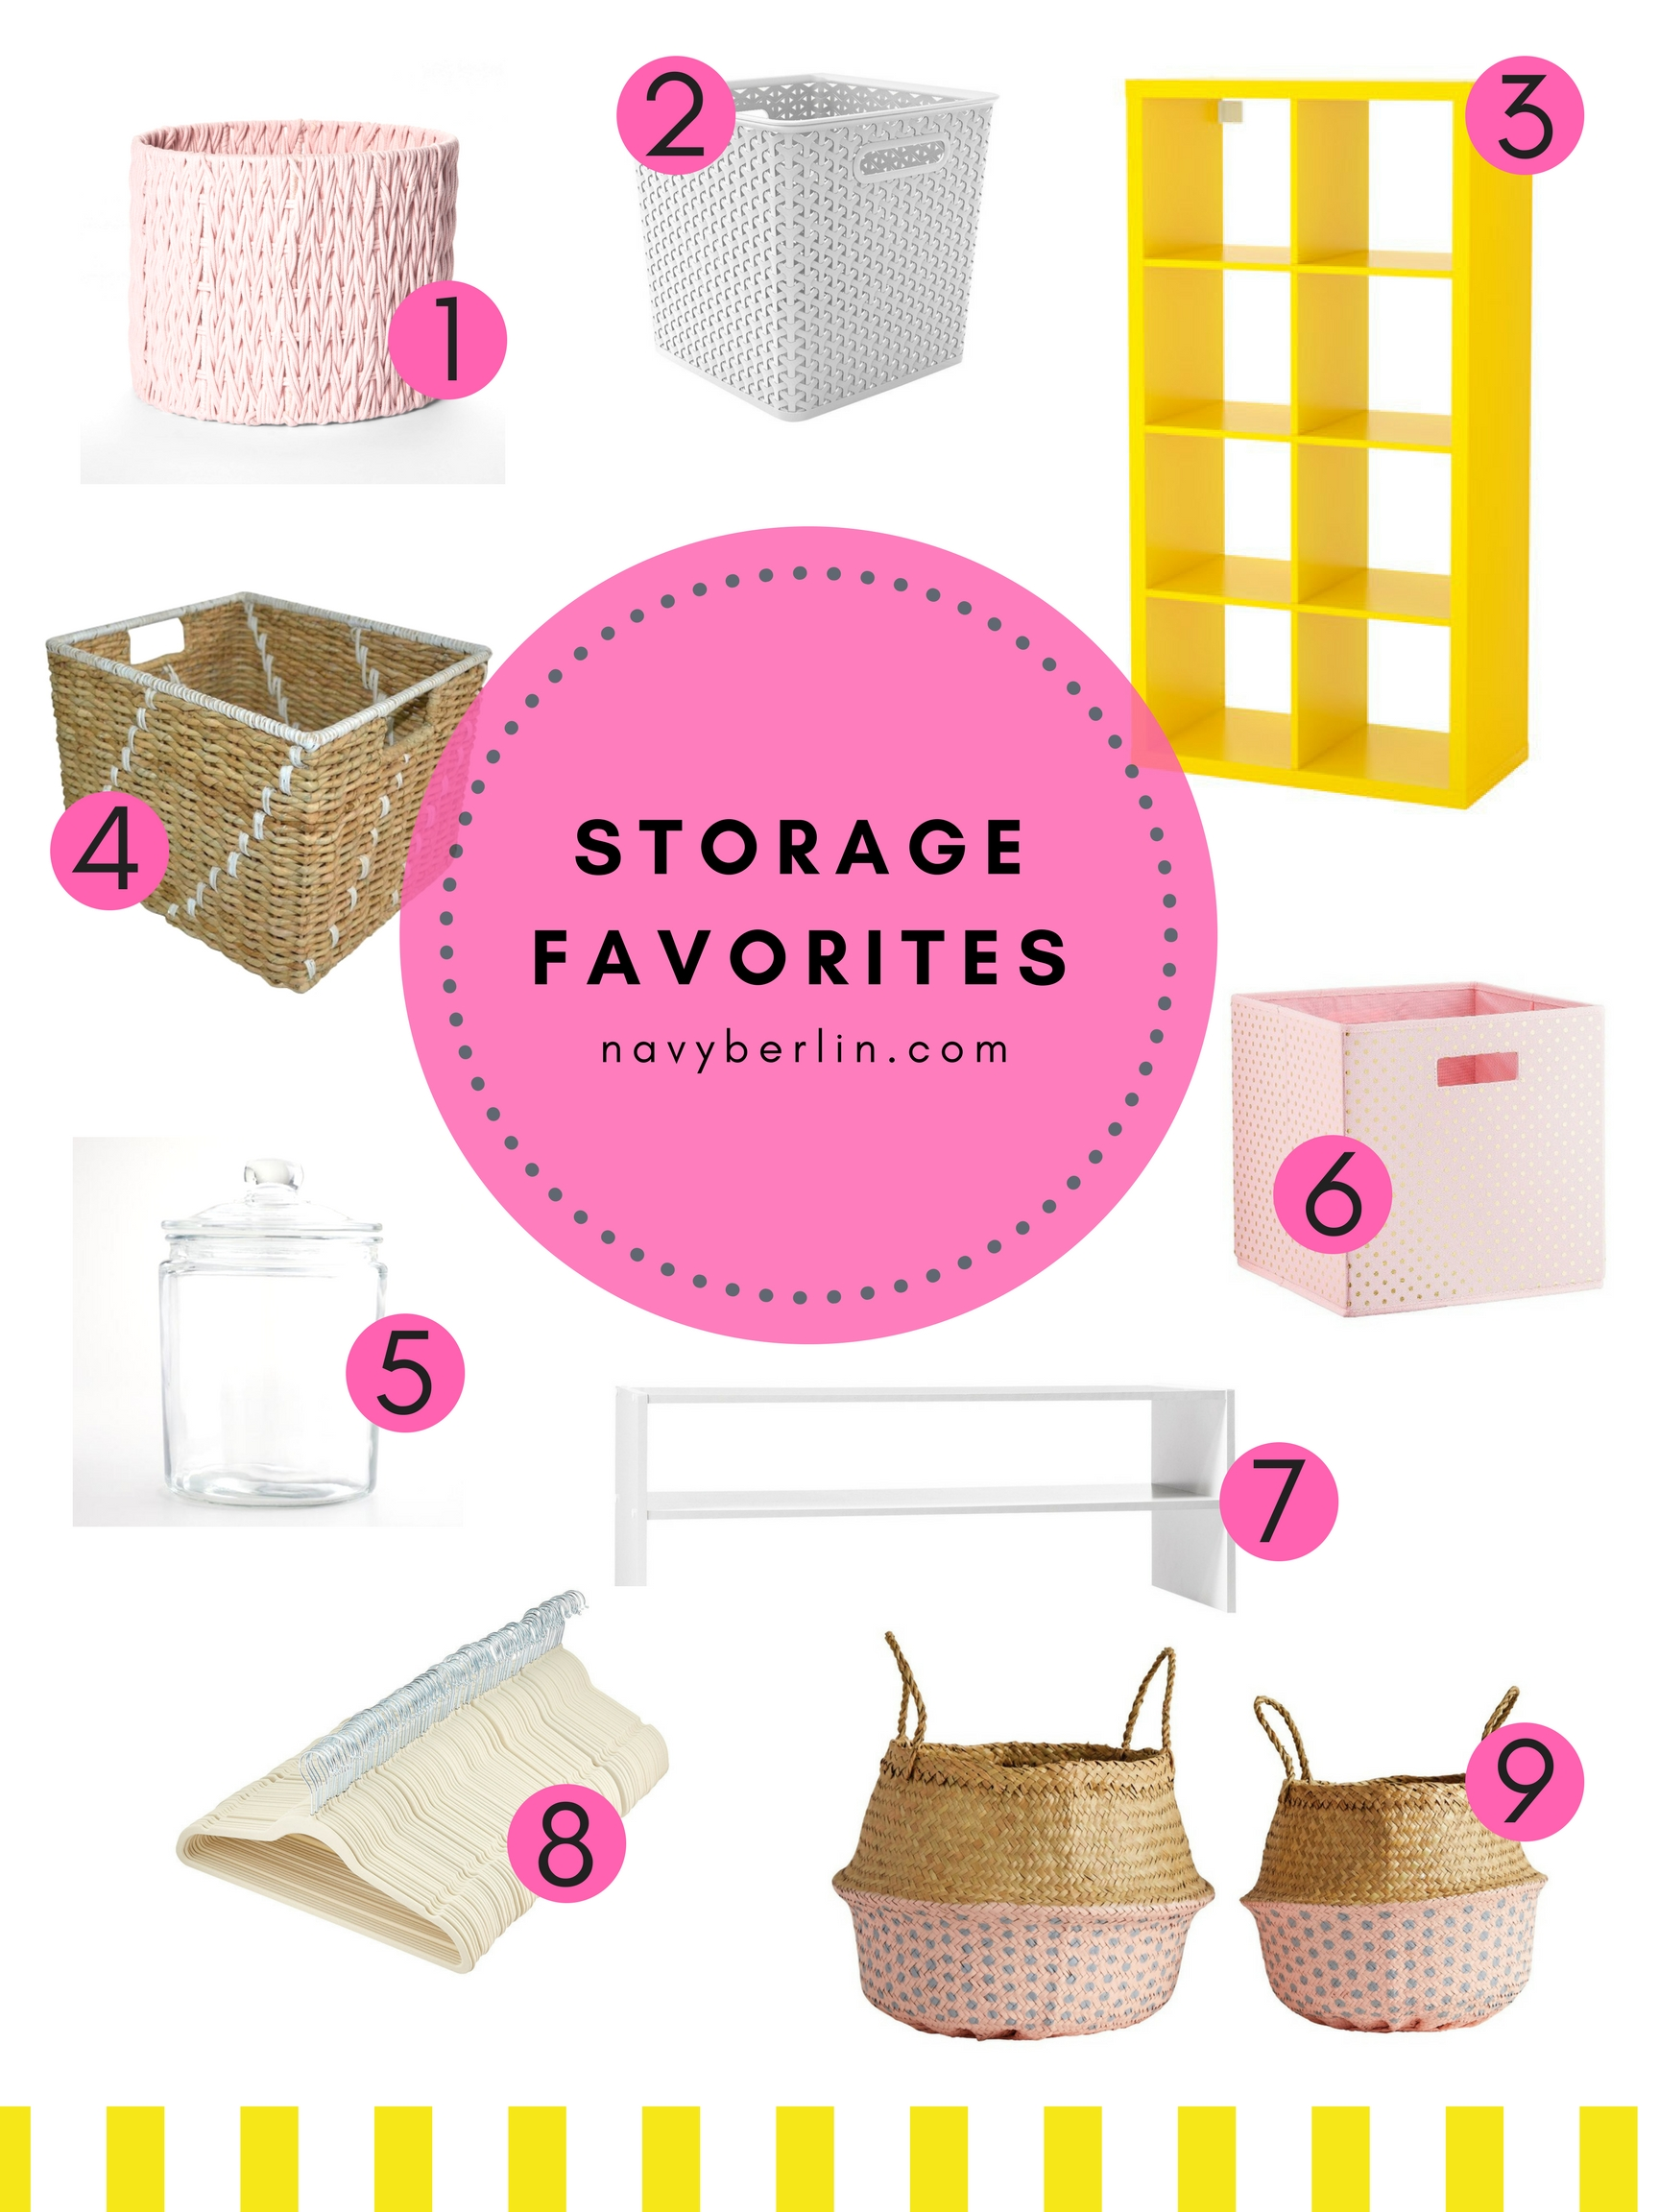 Storage Favorites